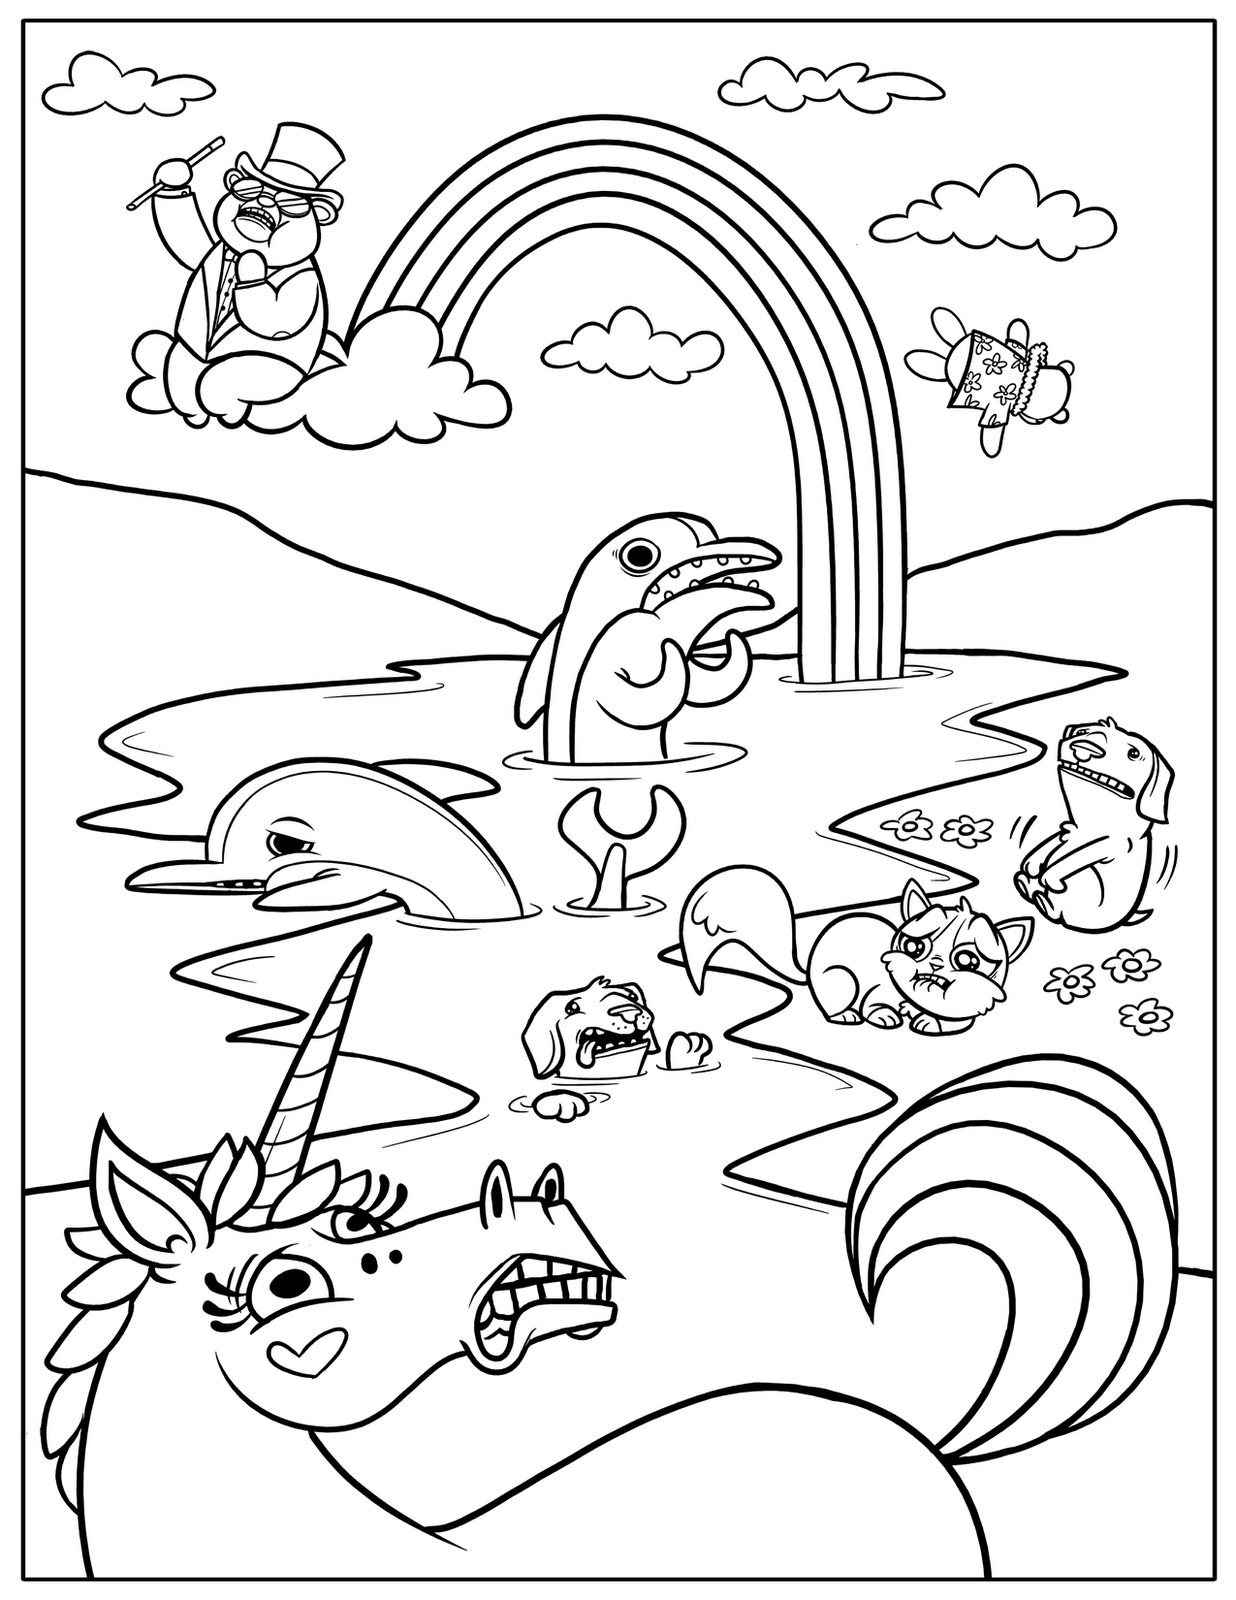 free coloring prints free coloring pages printables a girl and a glue gun free prints coloring